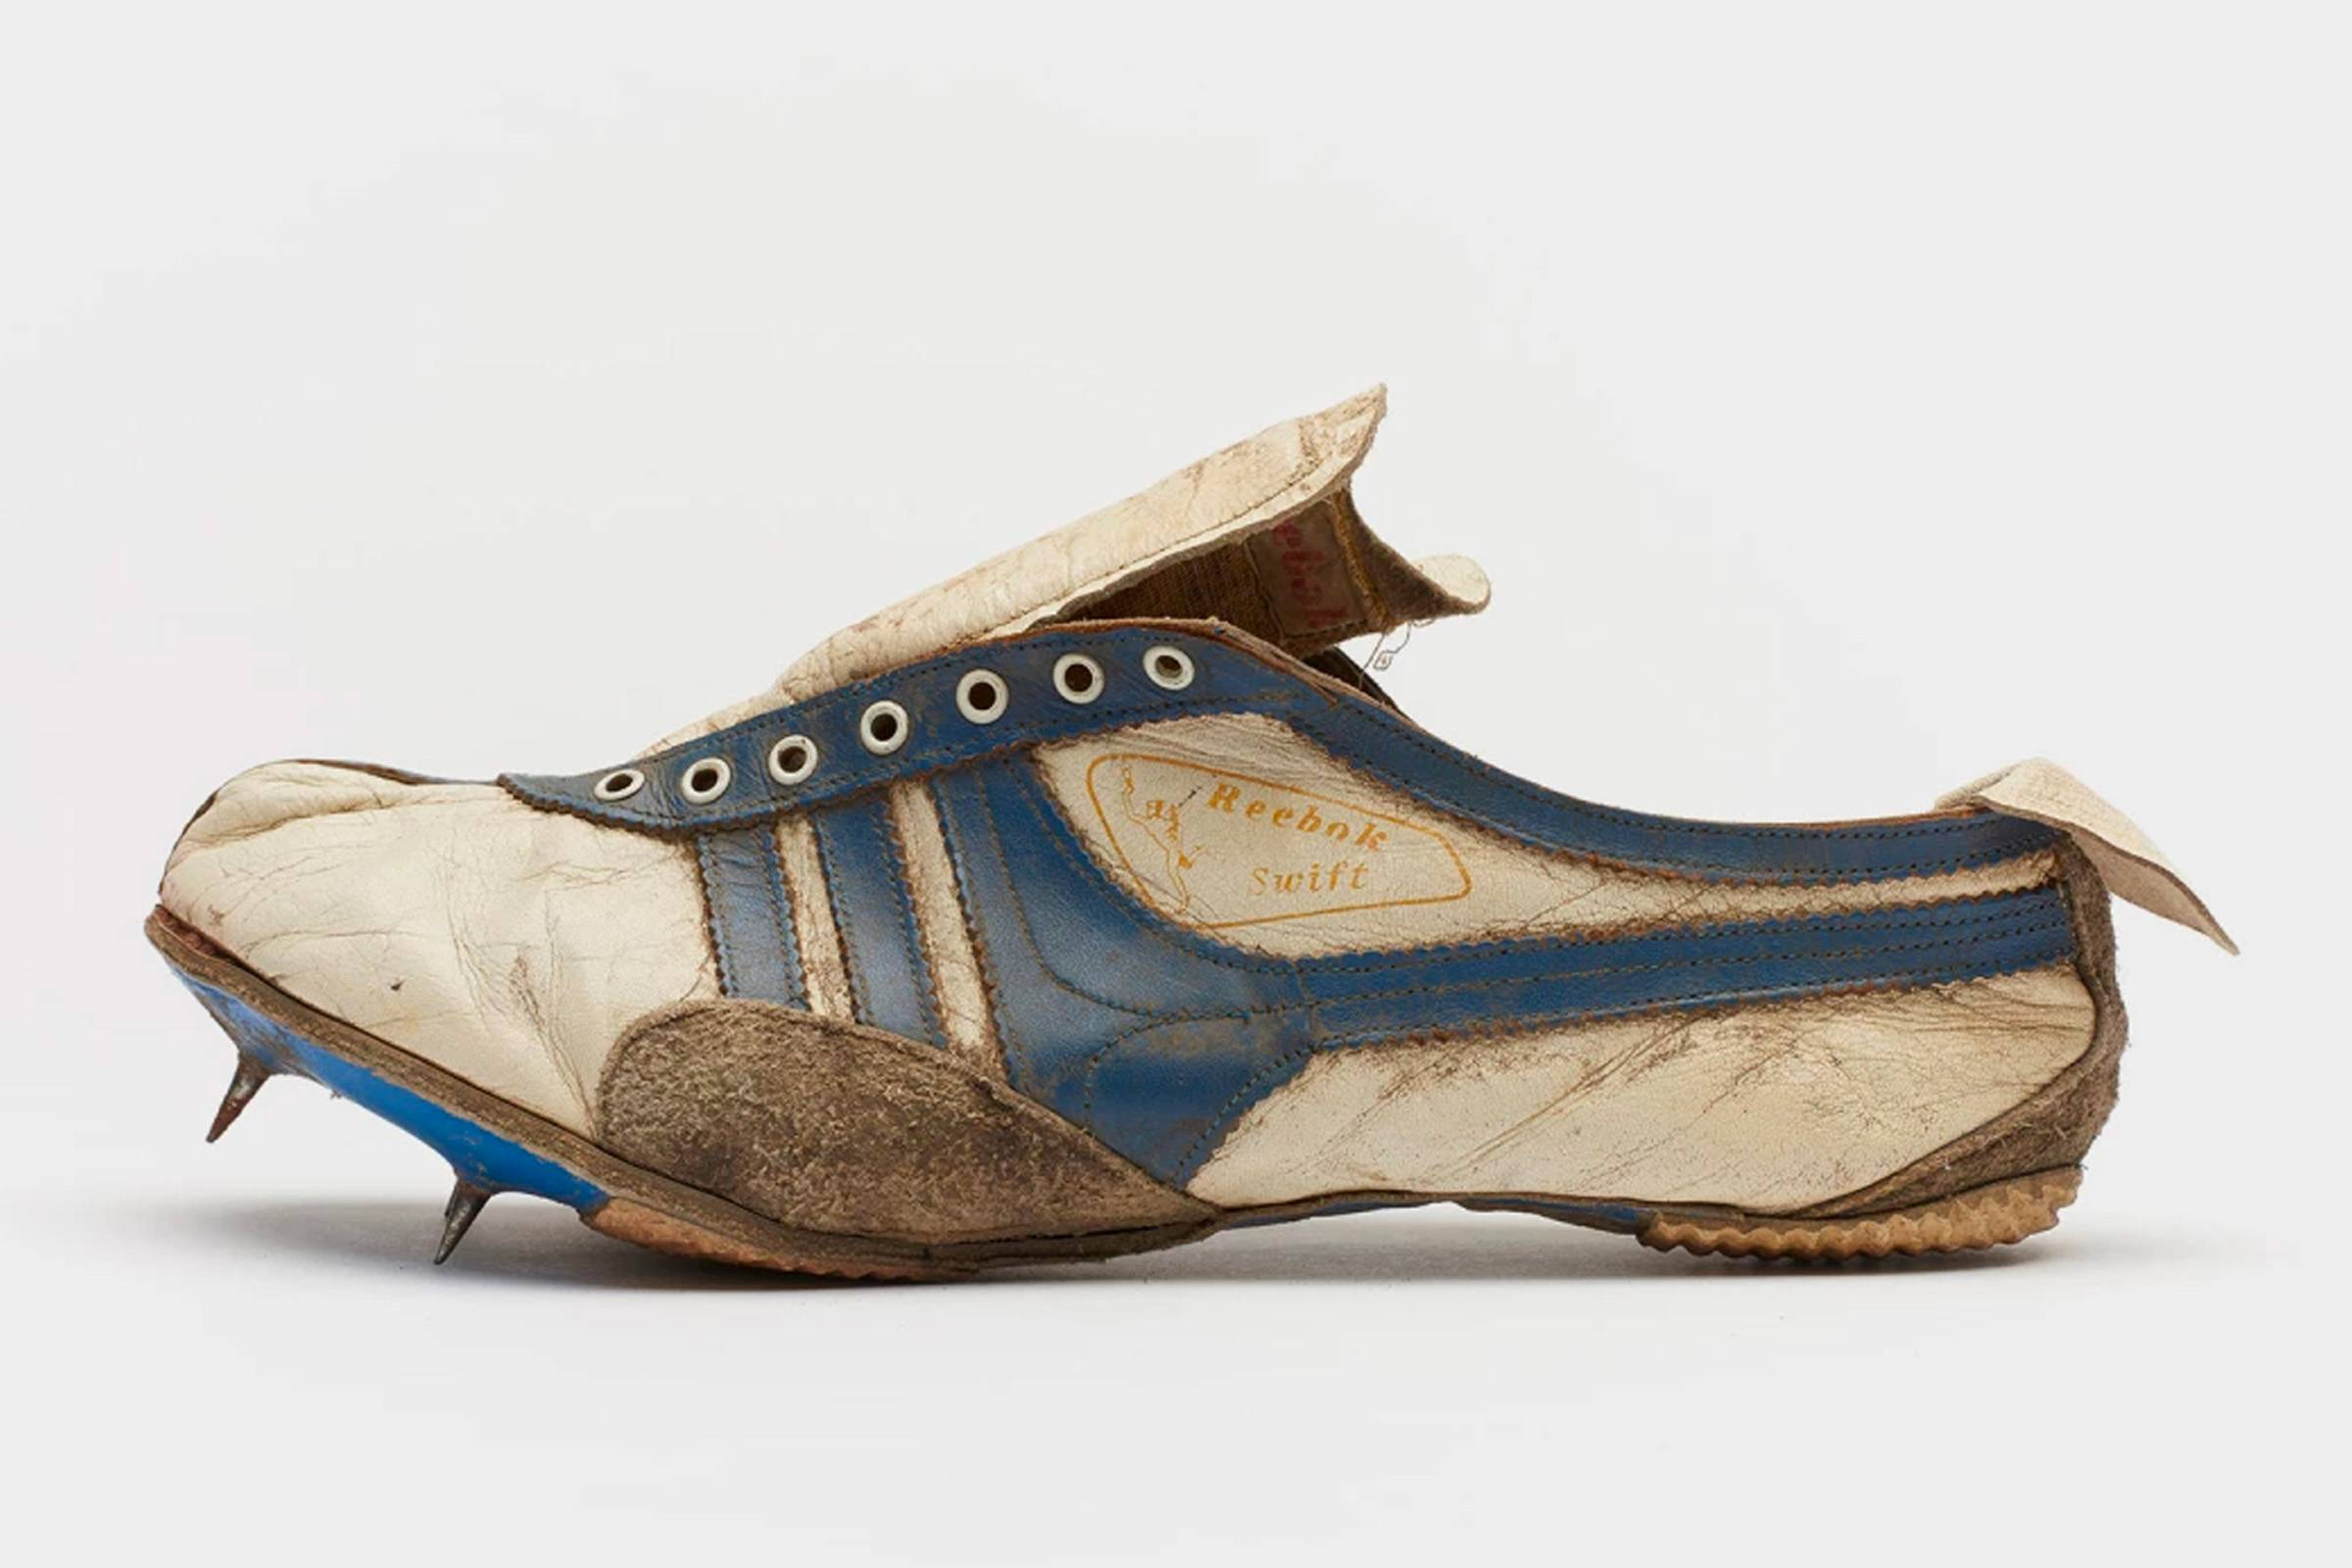 The Reebok Swift, a running spike from 1961